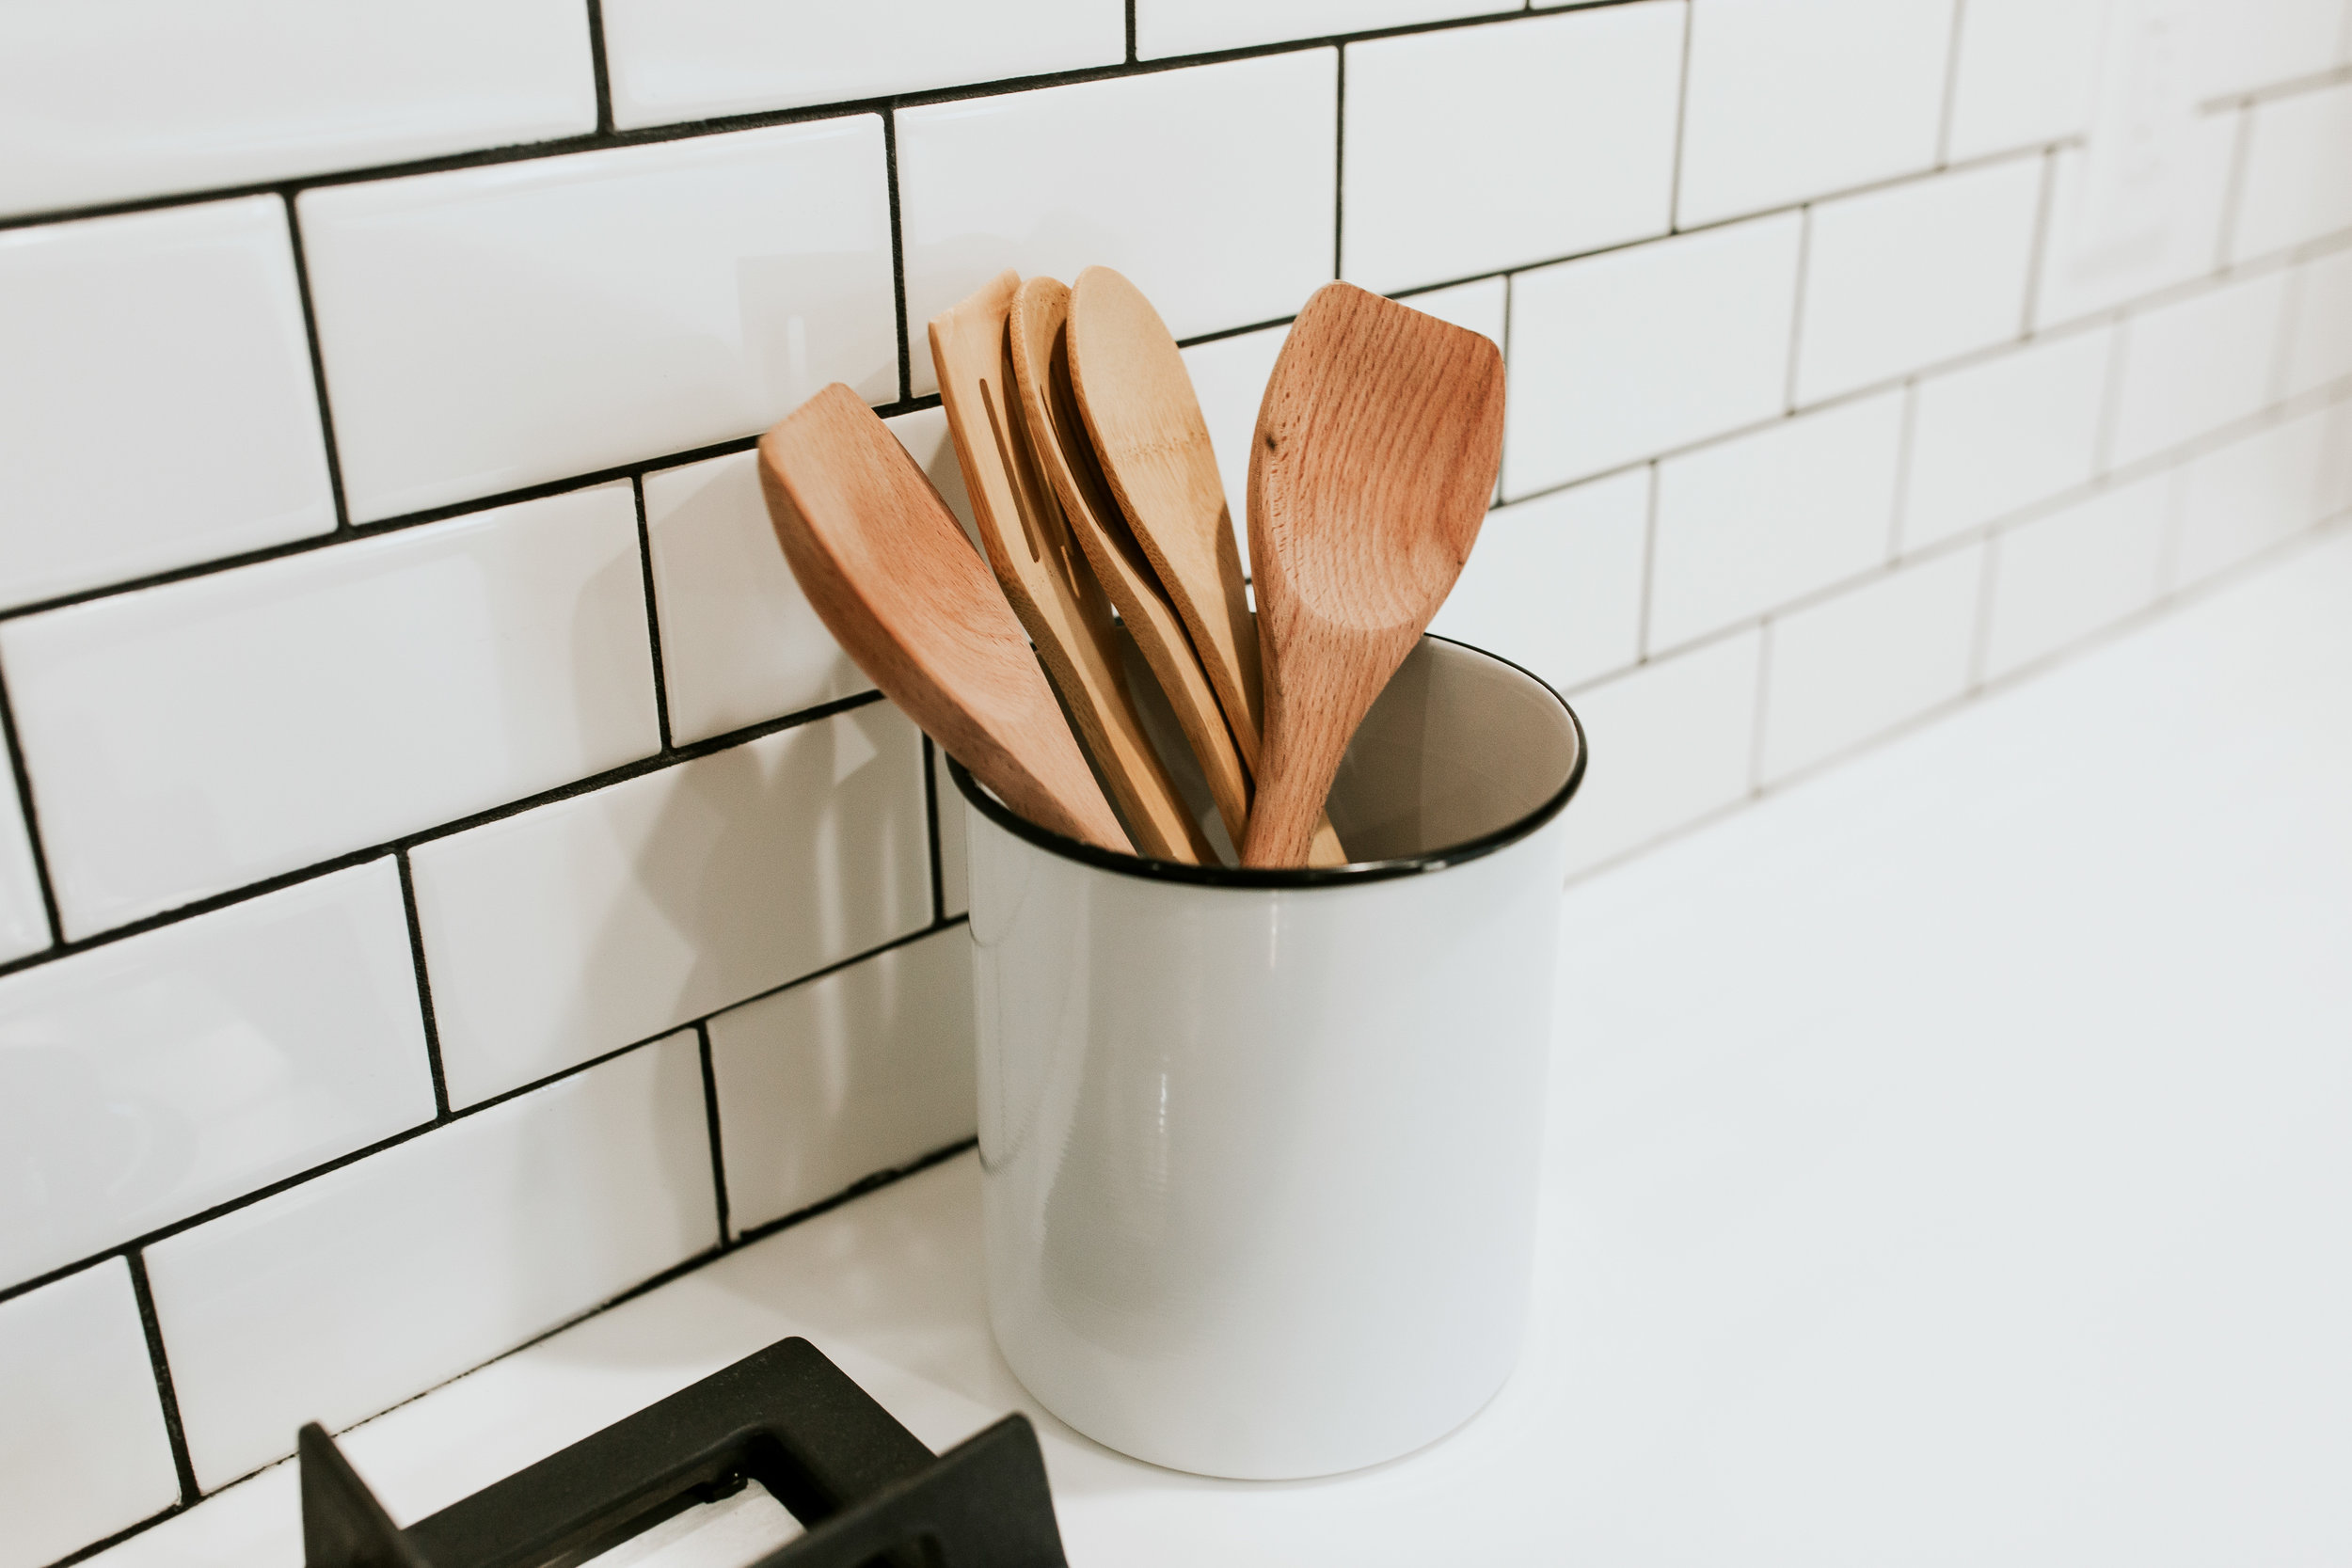 modern kitchen sources - Ikea kungsbacka cabinets, subway tile, modern decor, wood spoons, canister